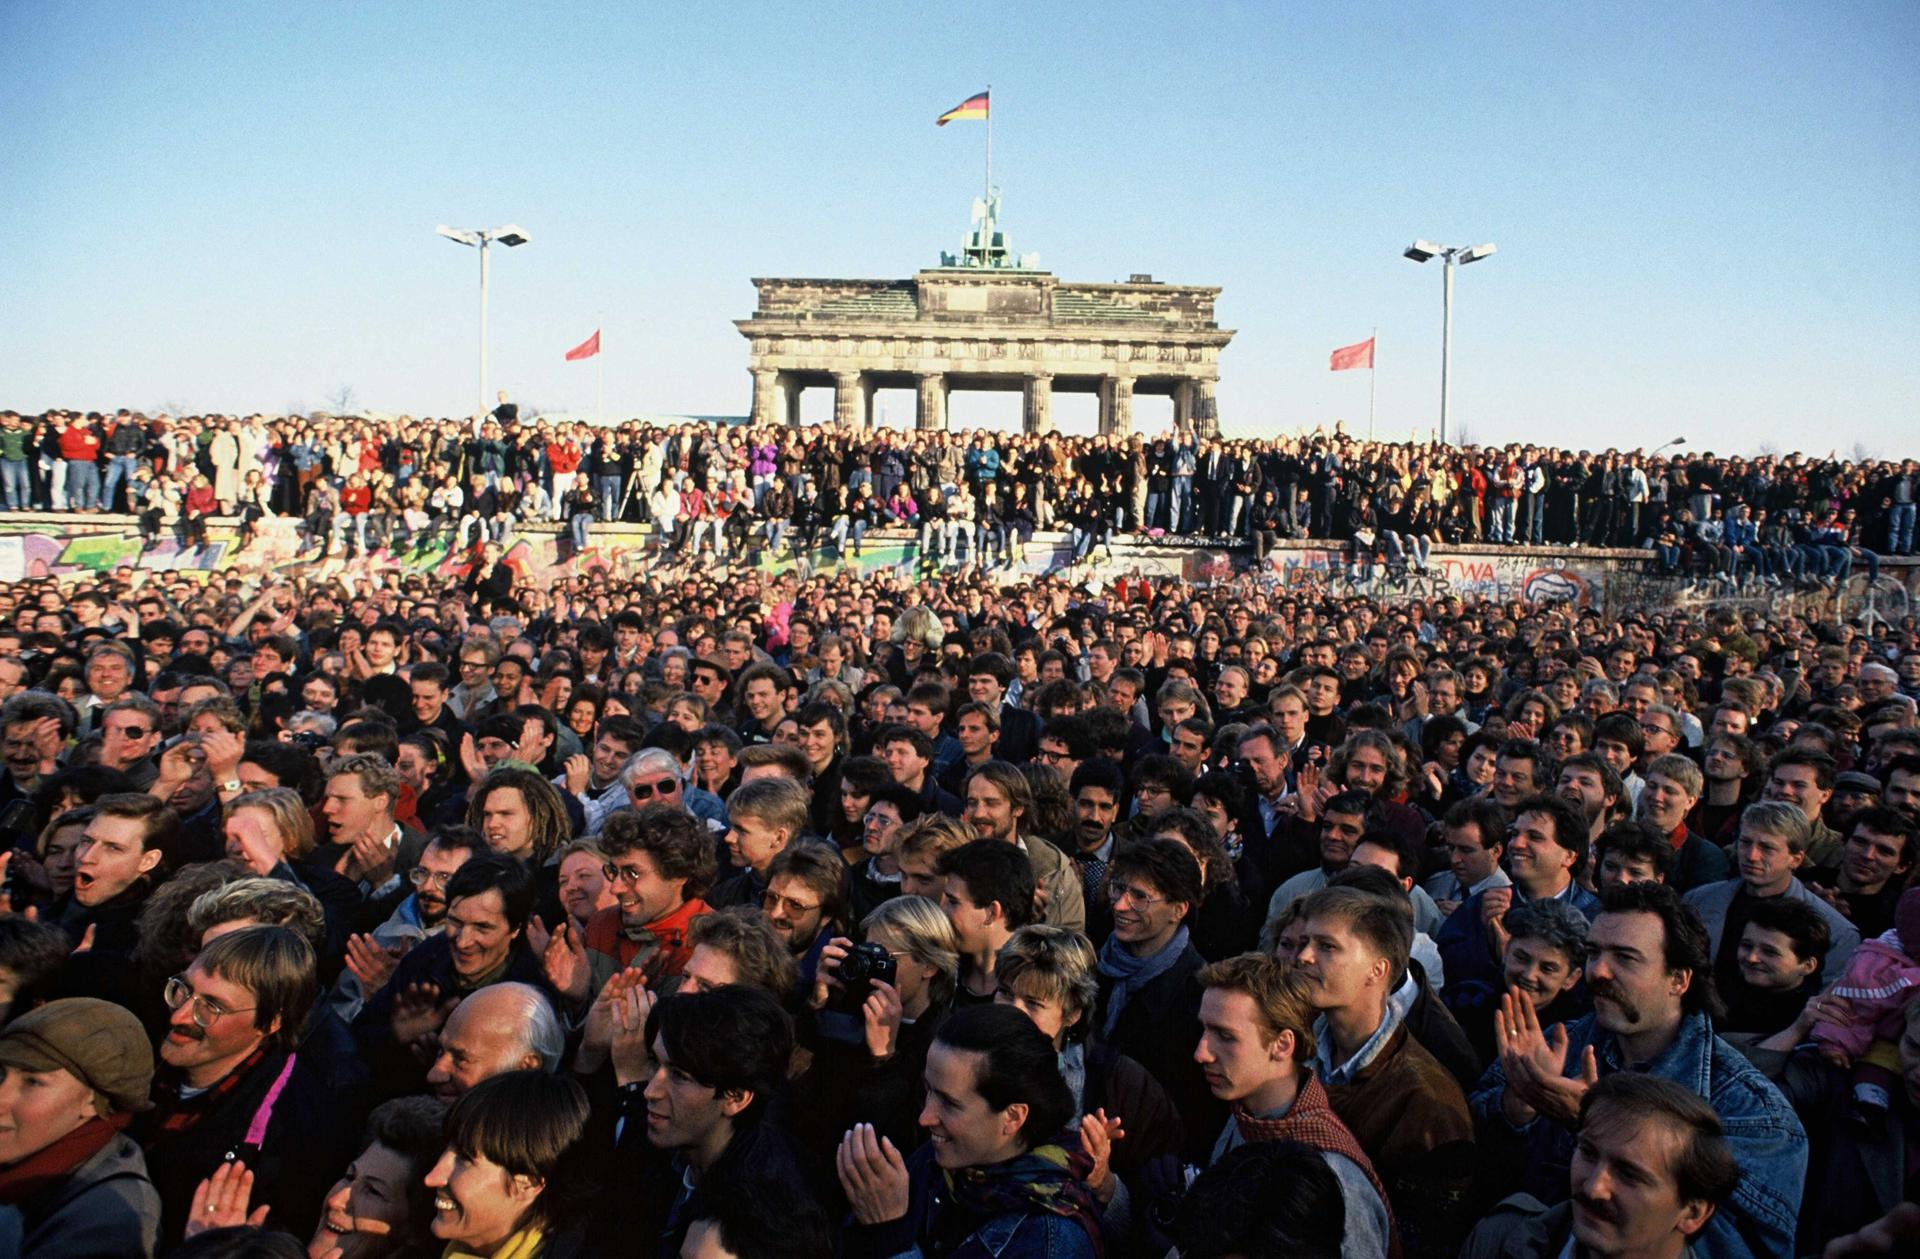 Thousands of people rushed to the Berlin Wall in the first few days after the opening of the Wall on November 9th, 1989